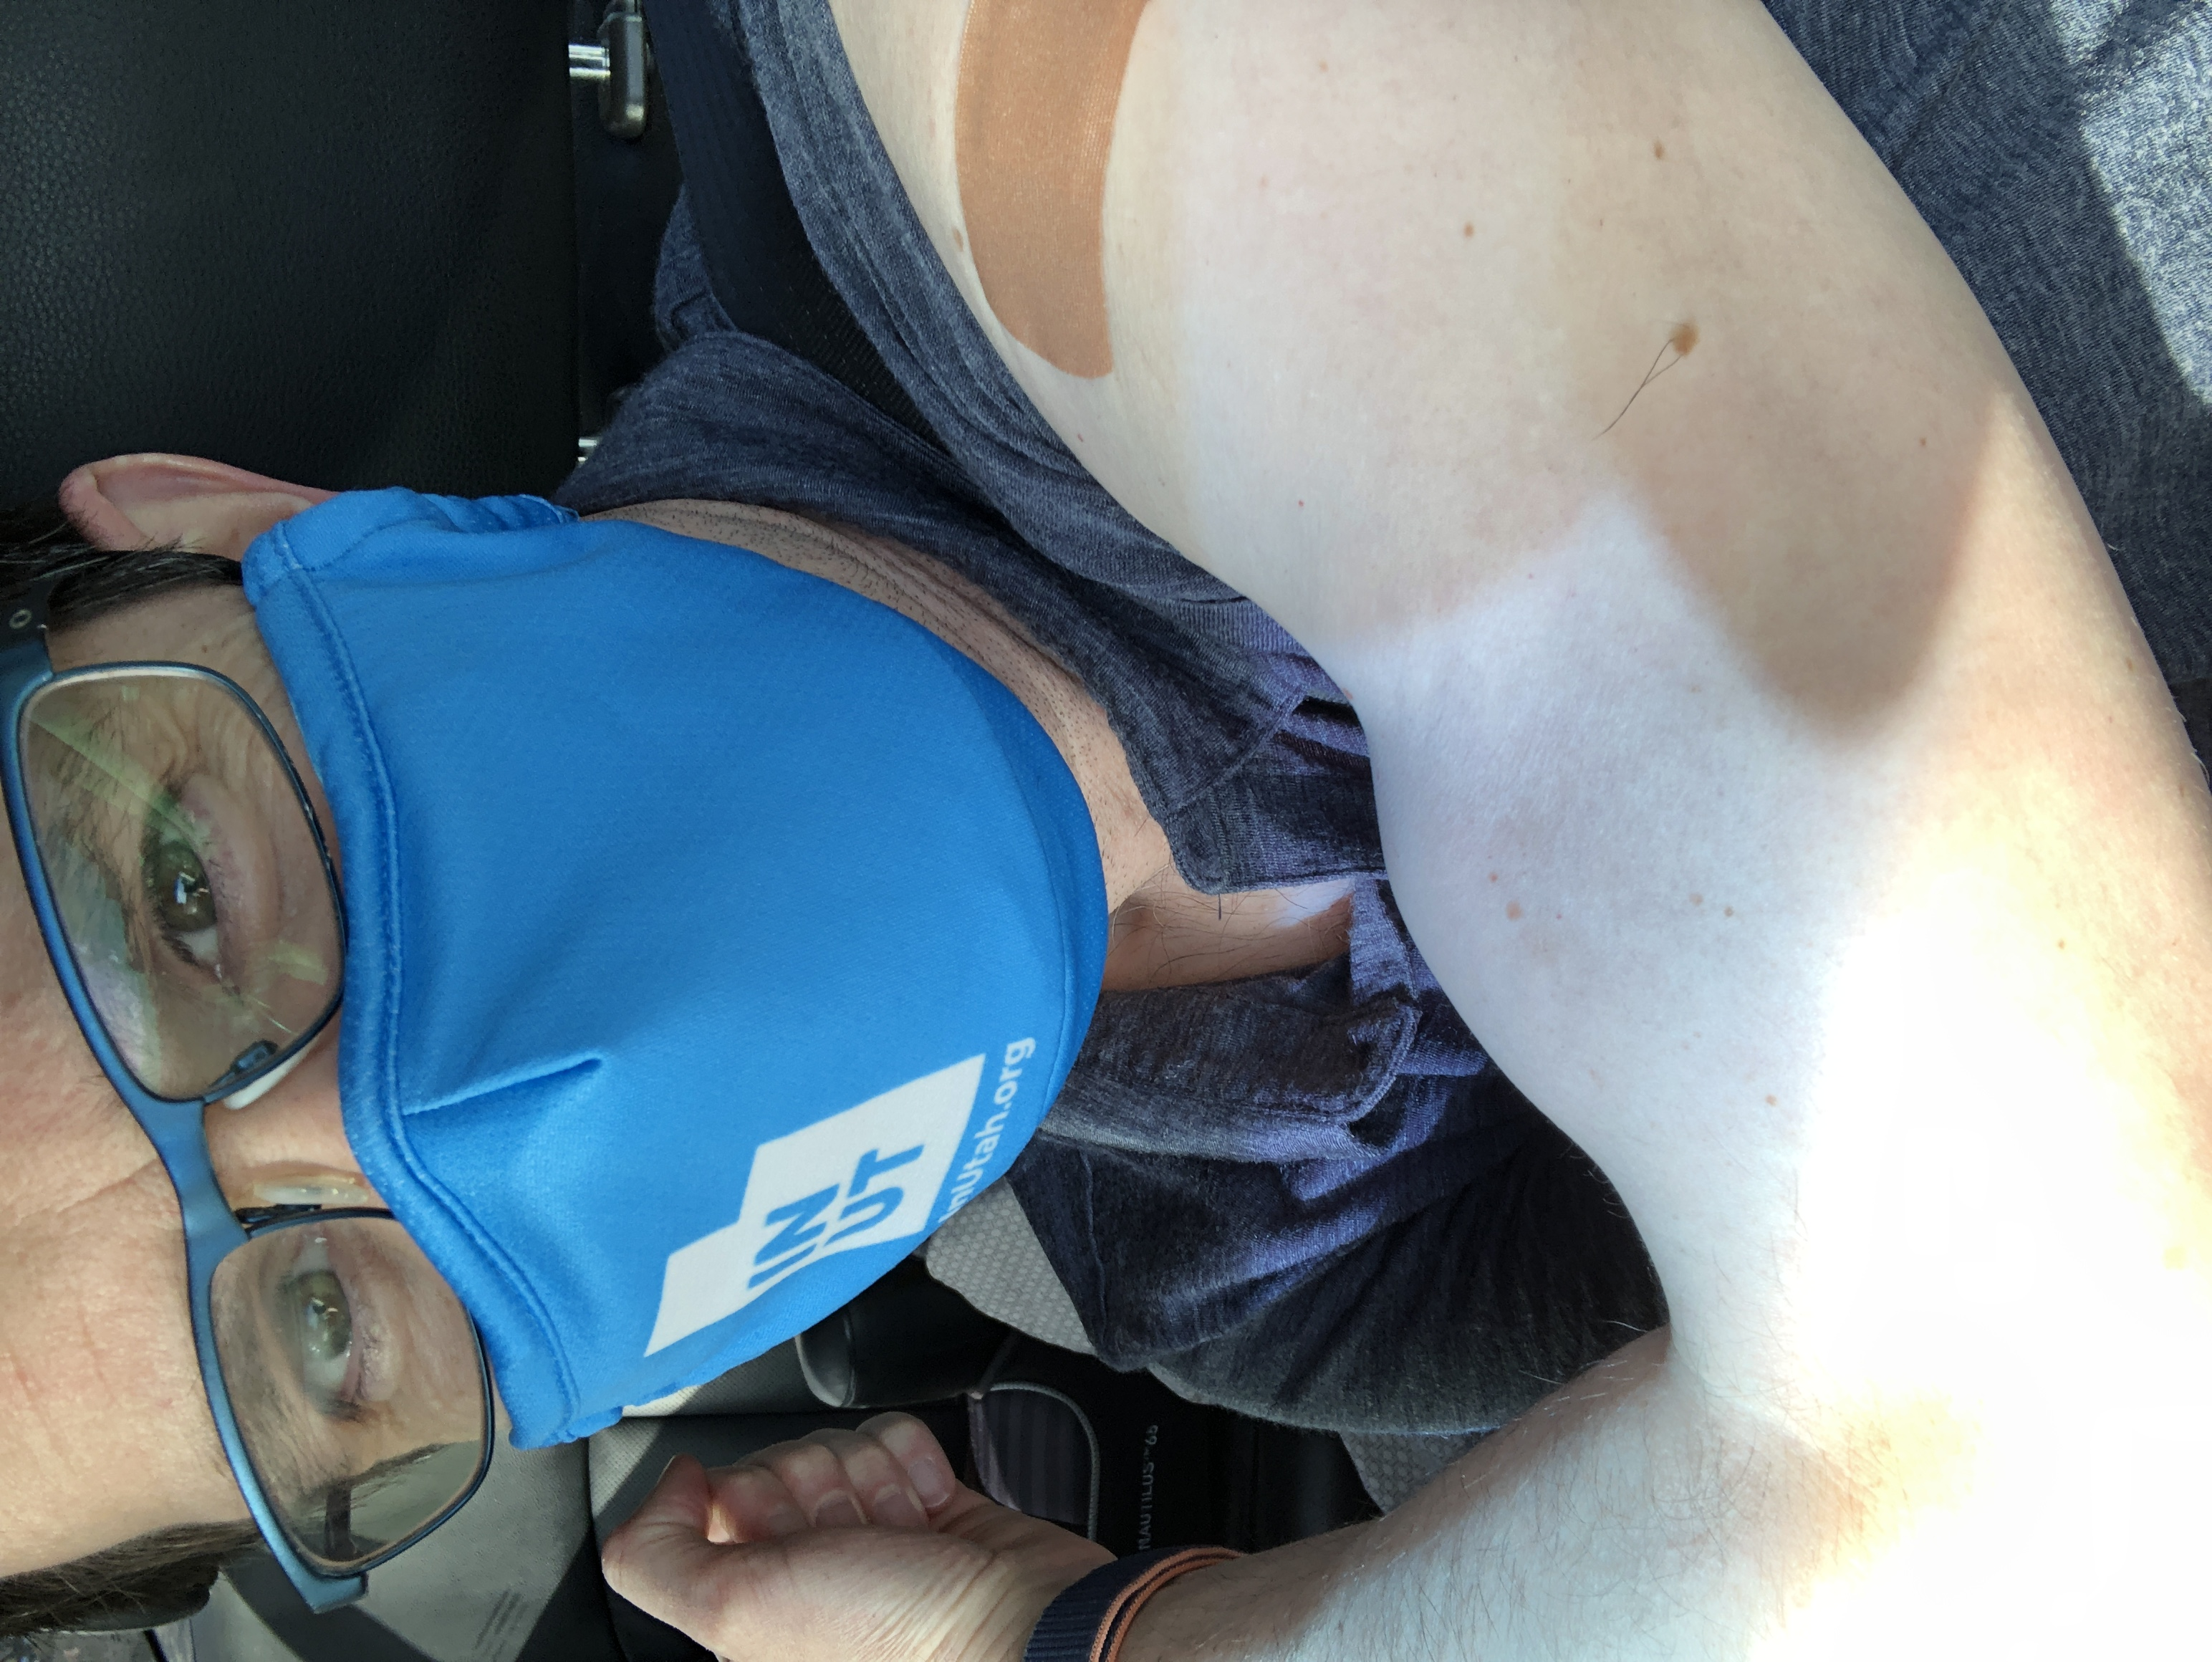 Self-portrait showing an arm with a band-aid on the shoulder, and a masked face